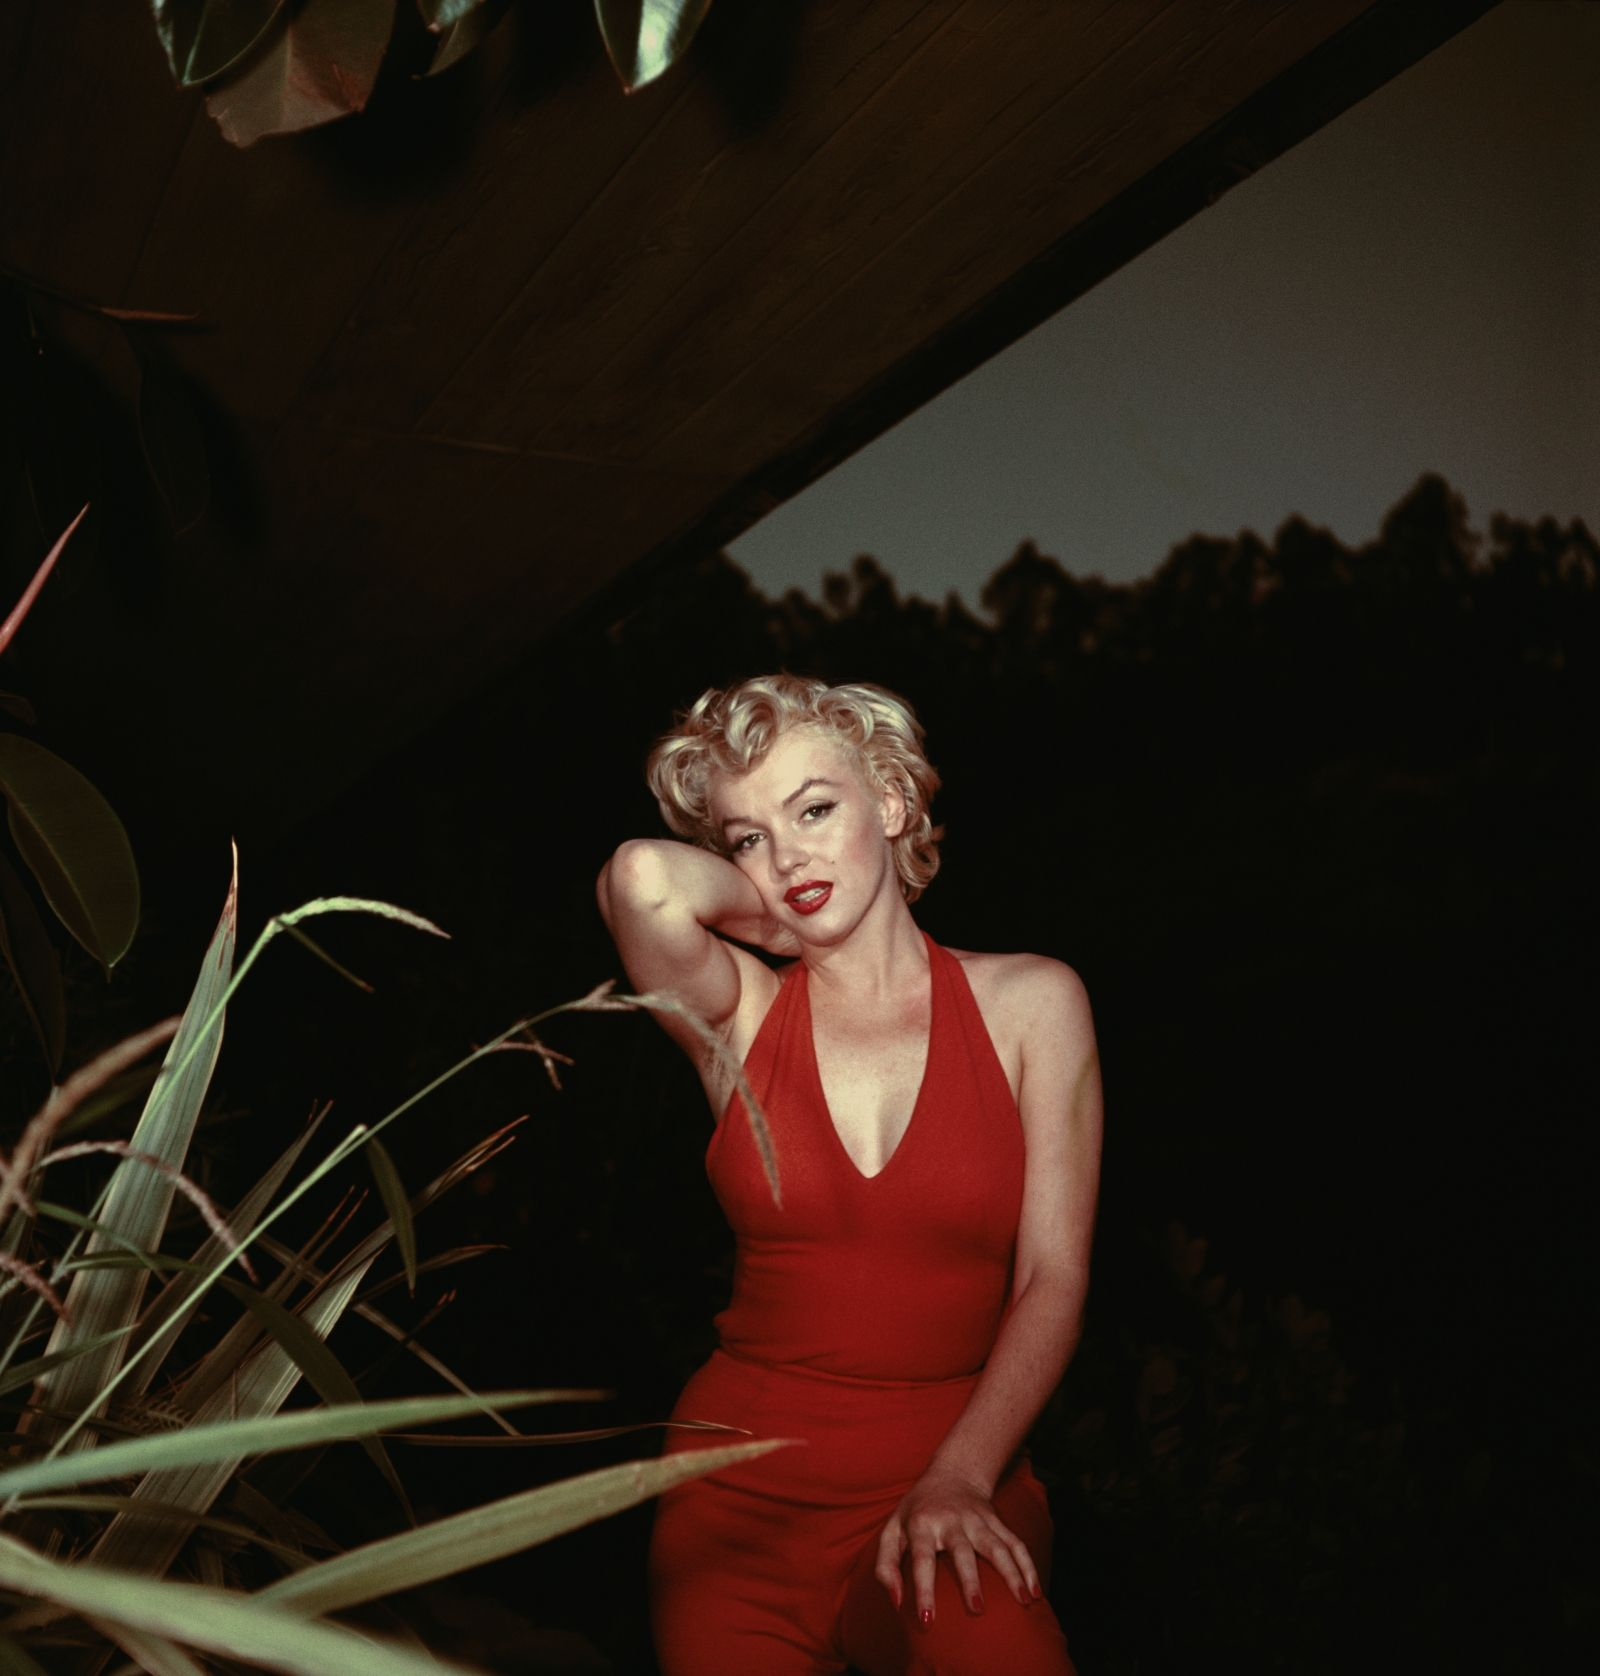 Marilyn Monroe: Secret pain of Hollywood icon revealed in exhibition of intimate possessions.   Personal keepsakes on display in The Legacy of a Legend in Chelsea, ahead of anticipated November auction.